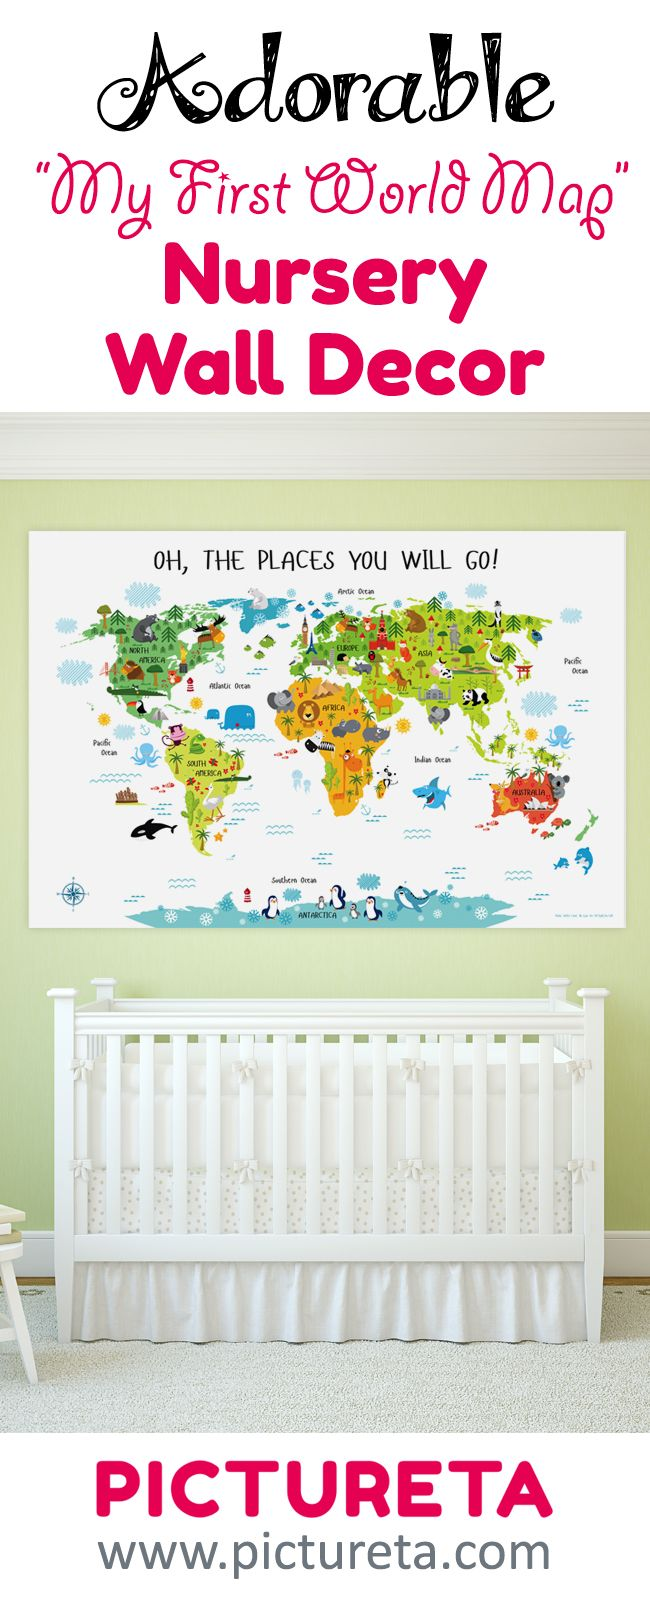 """Ready to hang on the wall, the poster of the map of the world for kids has adorable design to make beautiful nursery art, child's bedroom wall decor, or serve as playroom's educational geography game titled """"Oh, the places you will go!"""" with white background to match any nursery or playroom interior."""